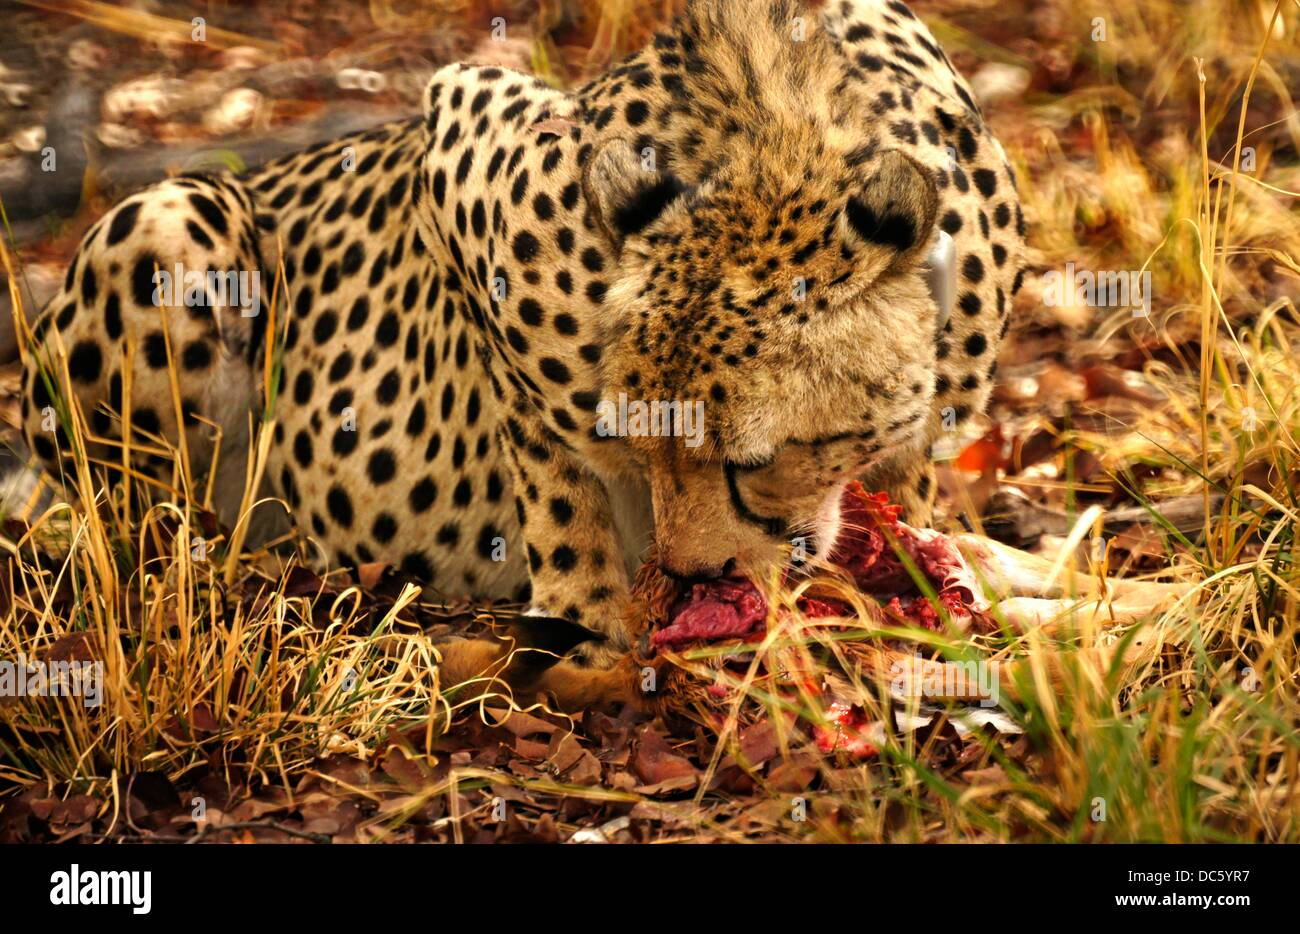 Cheetah Lea with a collar, eating a young Impala, north of the Kene road in the Moremi Game Reserve, Botswana - Stock Image